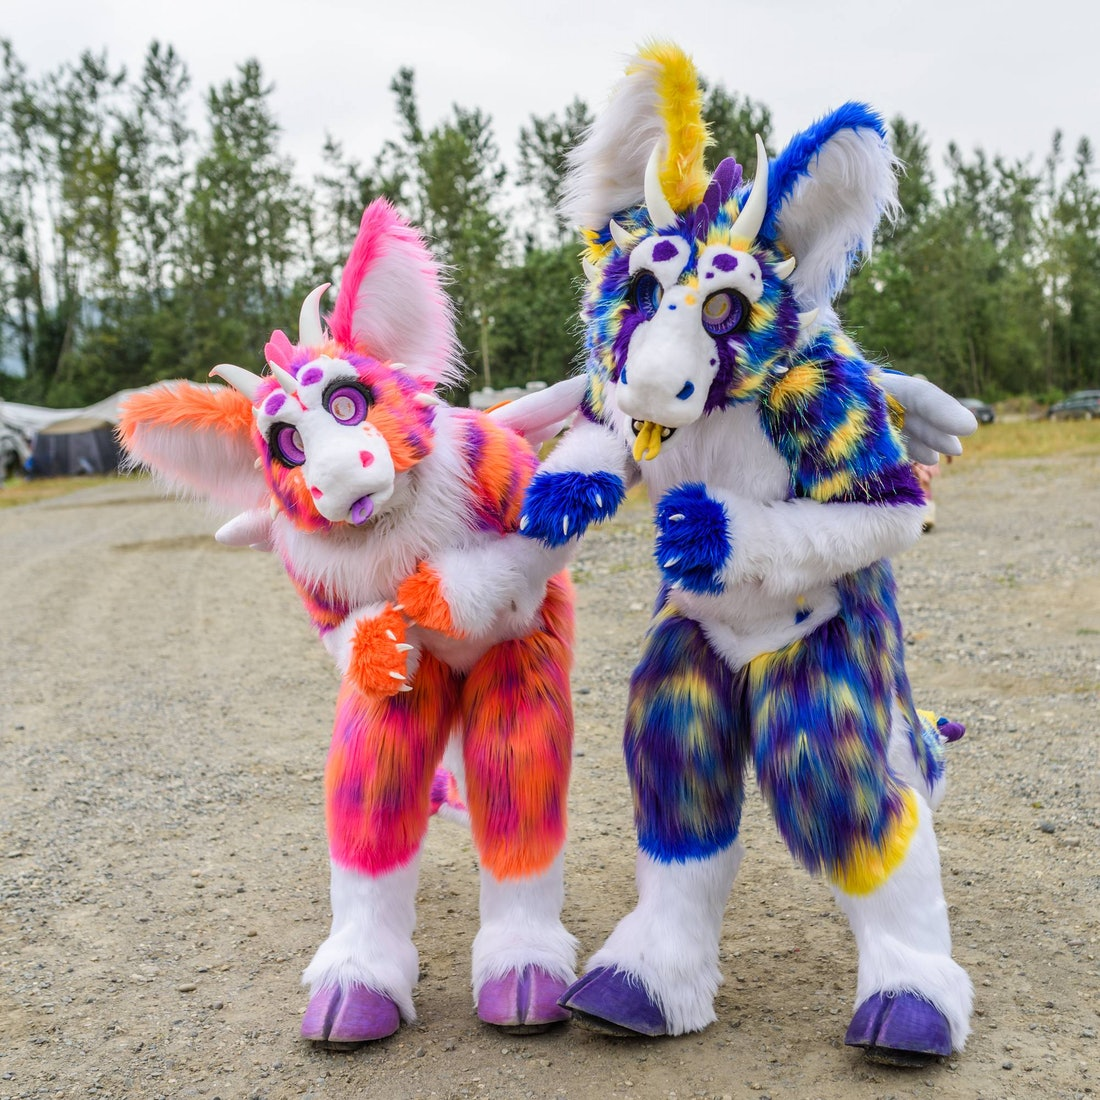 Animal Fur Porn away with the furries — shorthand social